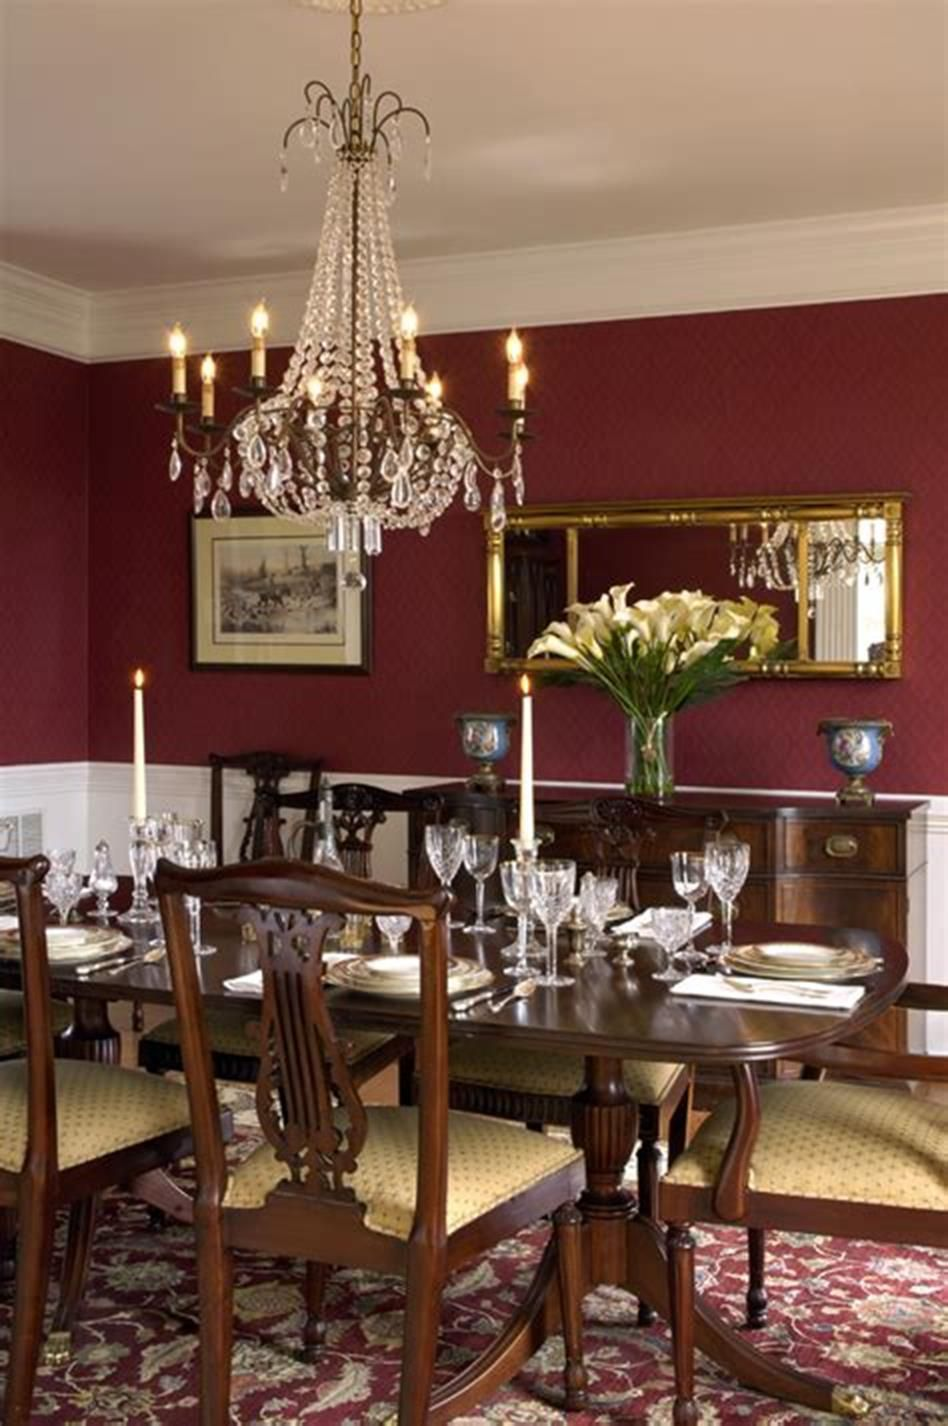 32 Stunning Dining Room Decorating Ideas On A Budget ...